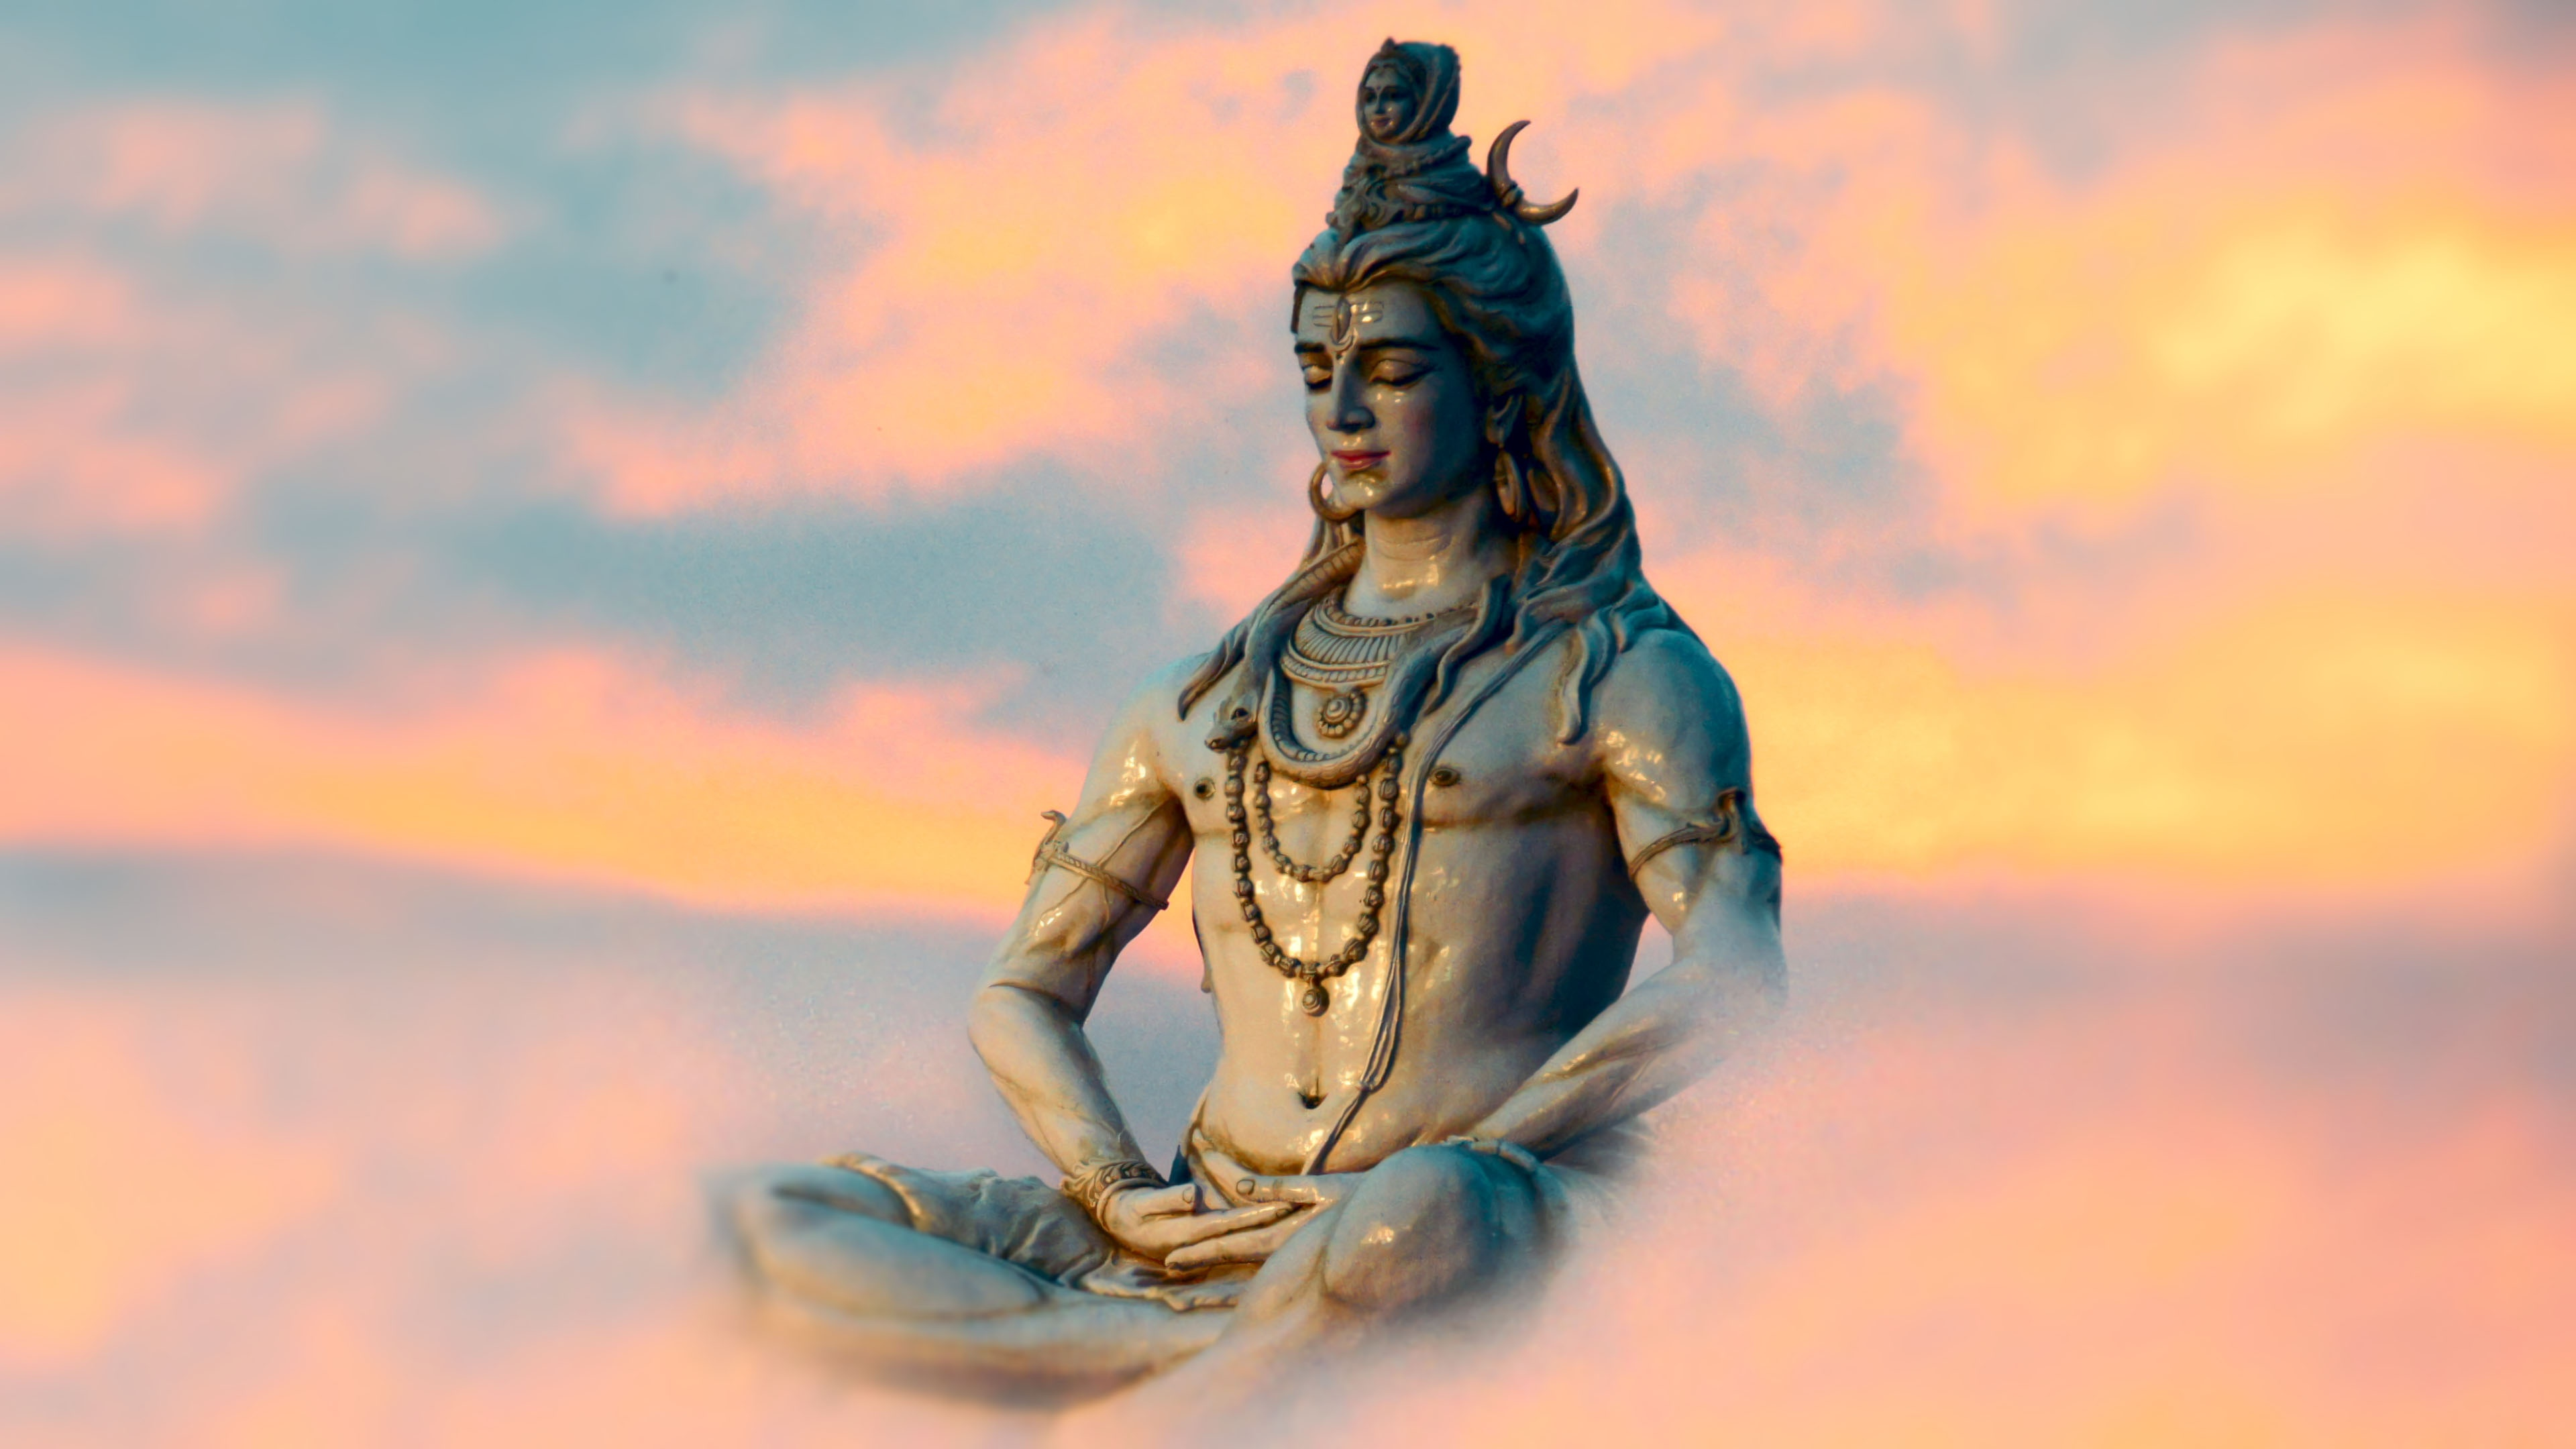 Shiva Wallpaper Hindu Wallpaper Lord Shiva Ji Wallpapers: Lord Shiva HD Wallpapers